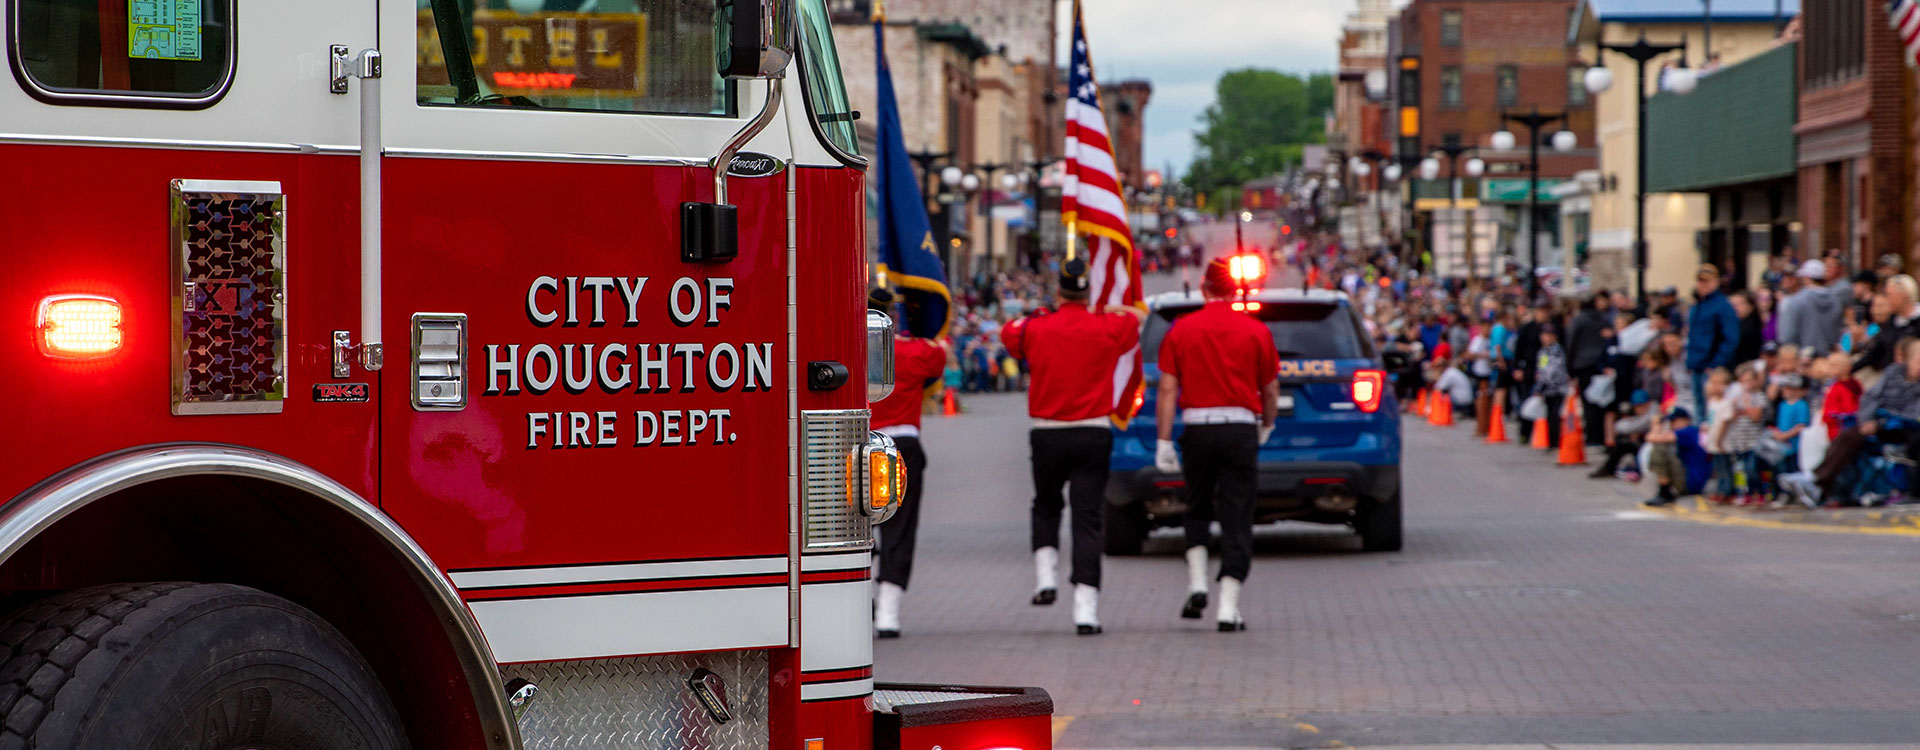 Houghton city fire department